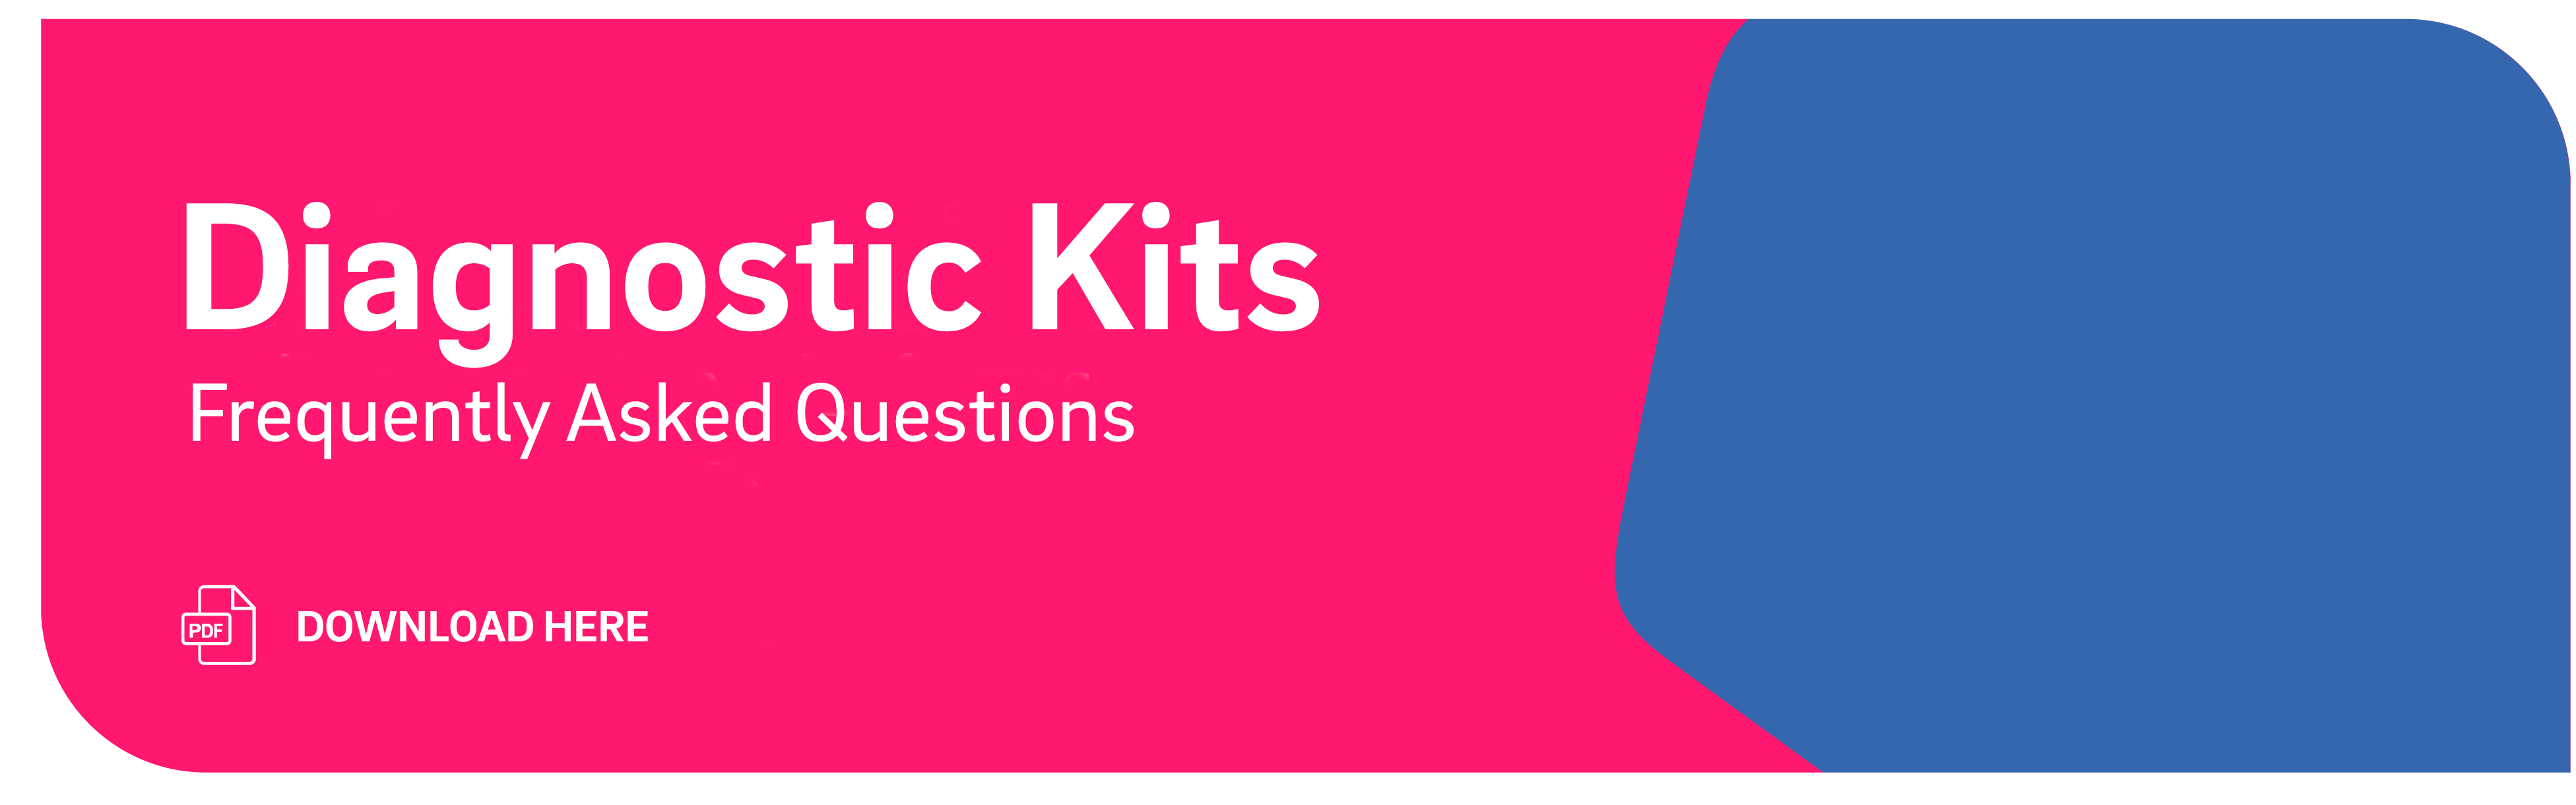 diagnostic-kits-FAQs-button